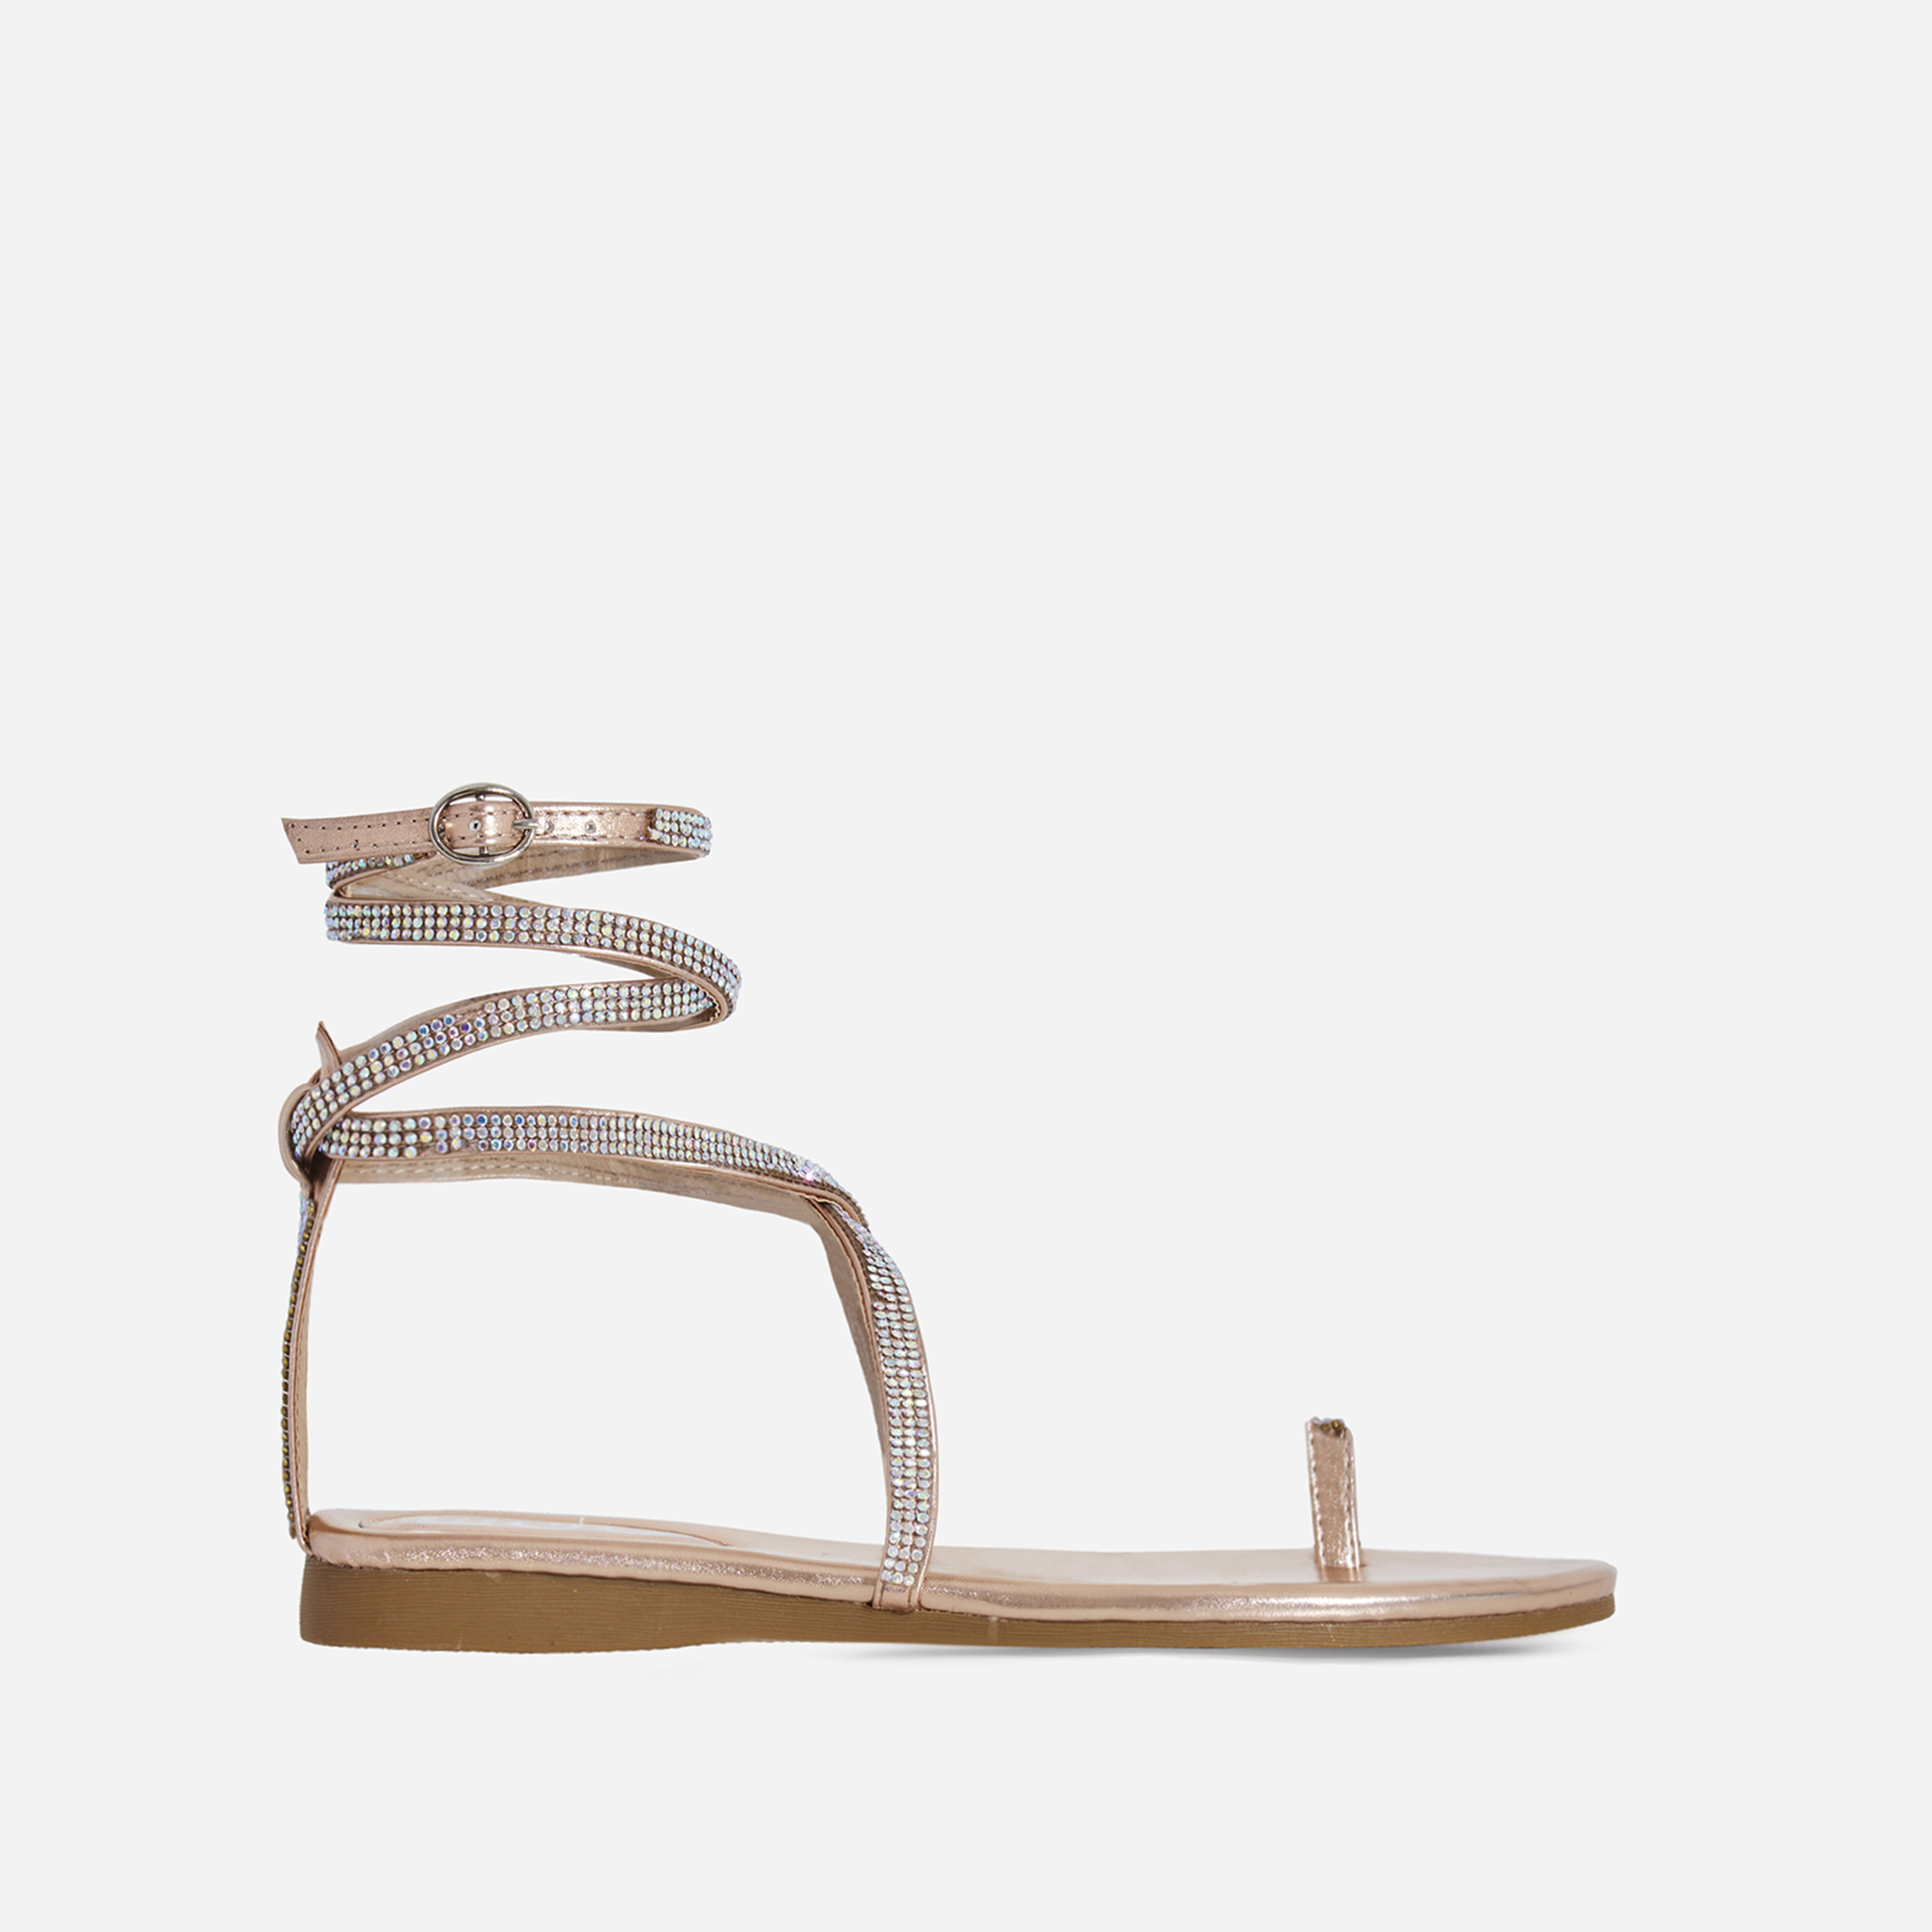 Carat Diamante Lace Up Toe Strap Gladiator Sandal In Rose Gold Faux Leather